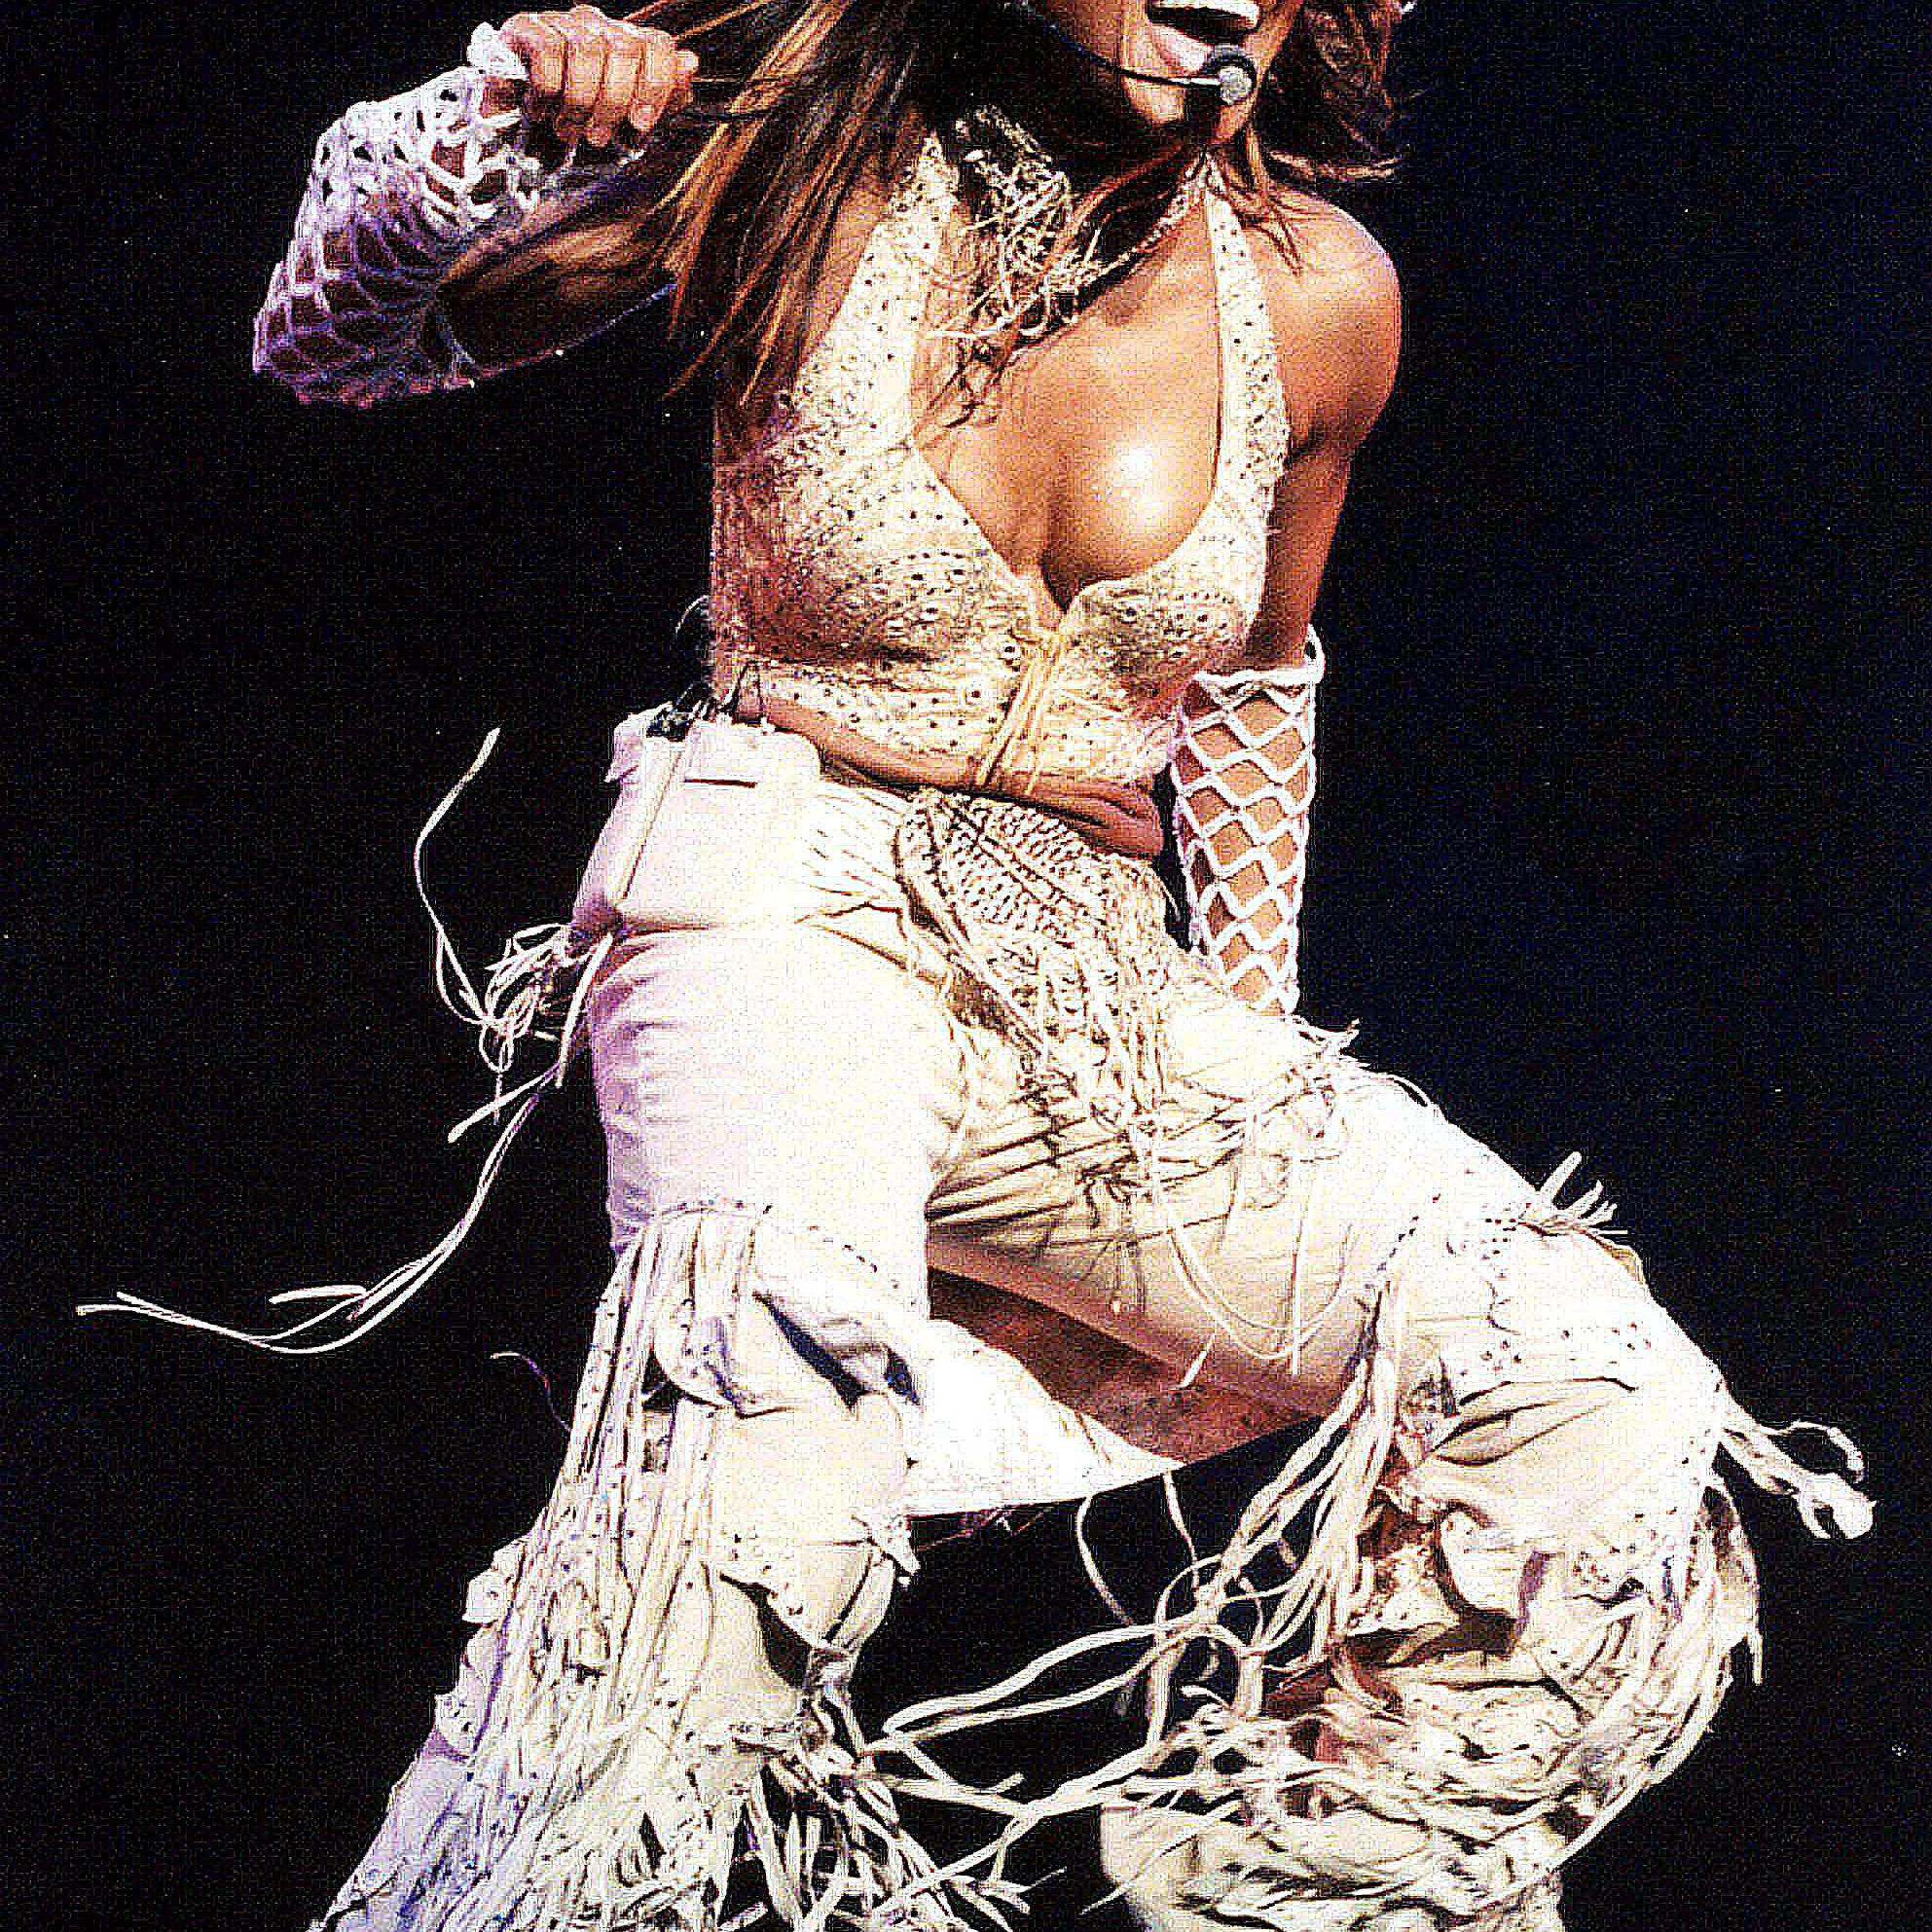 20 Reasons Why Janet Jackson is a Superstar